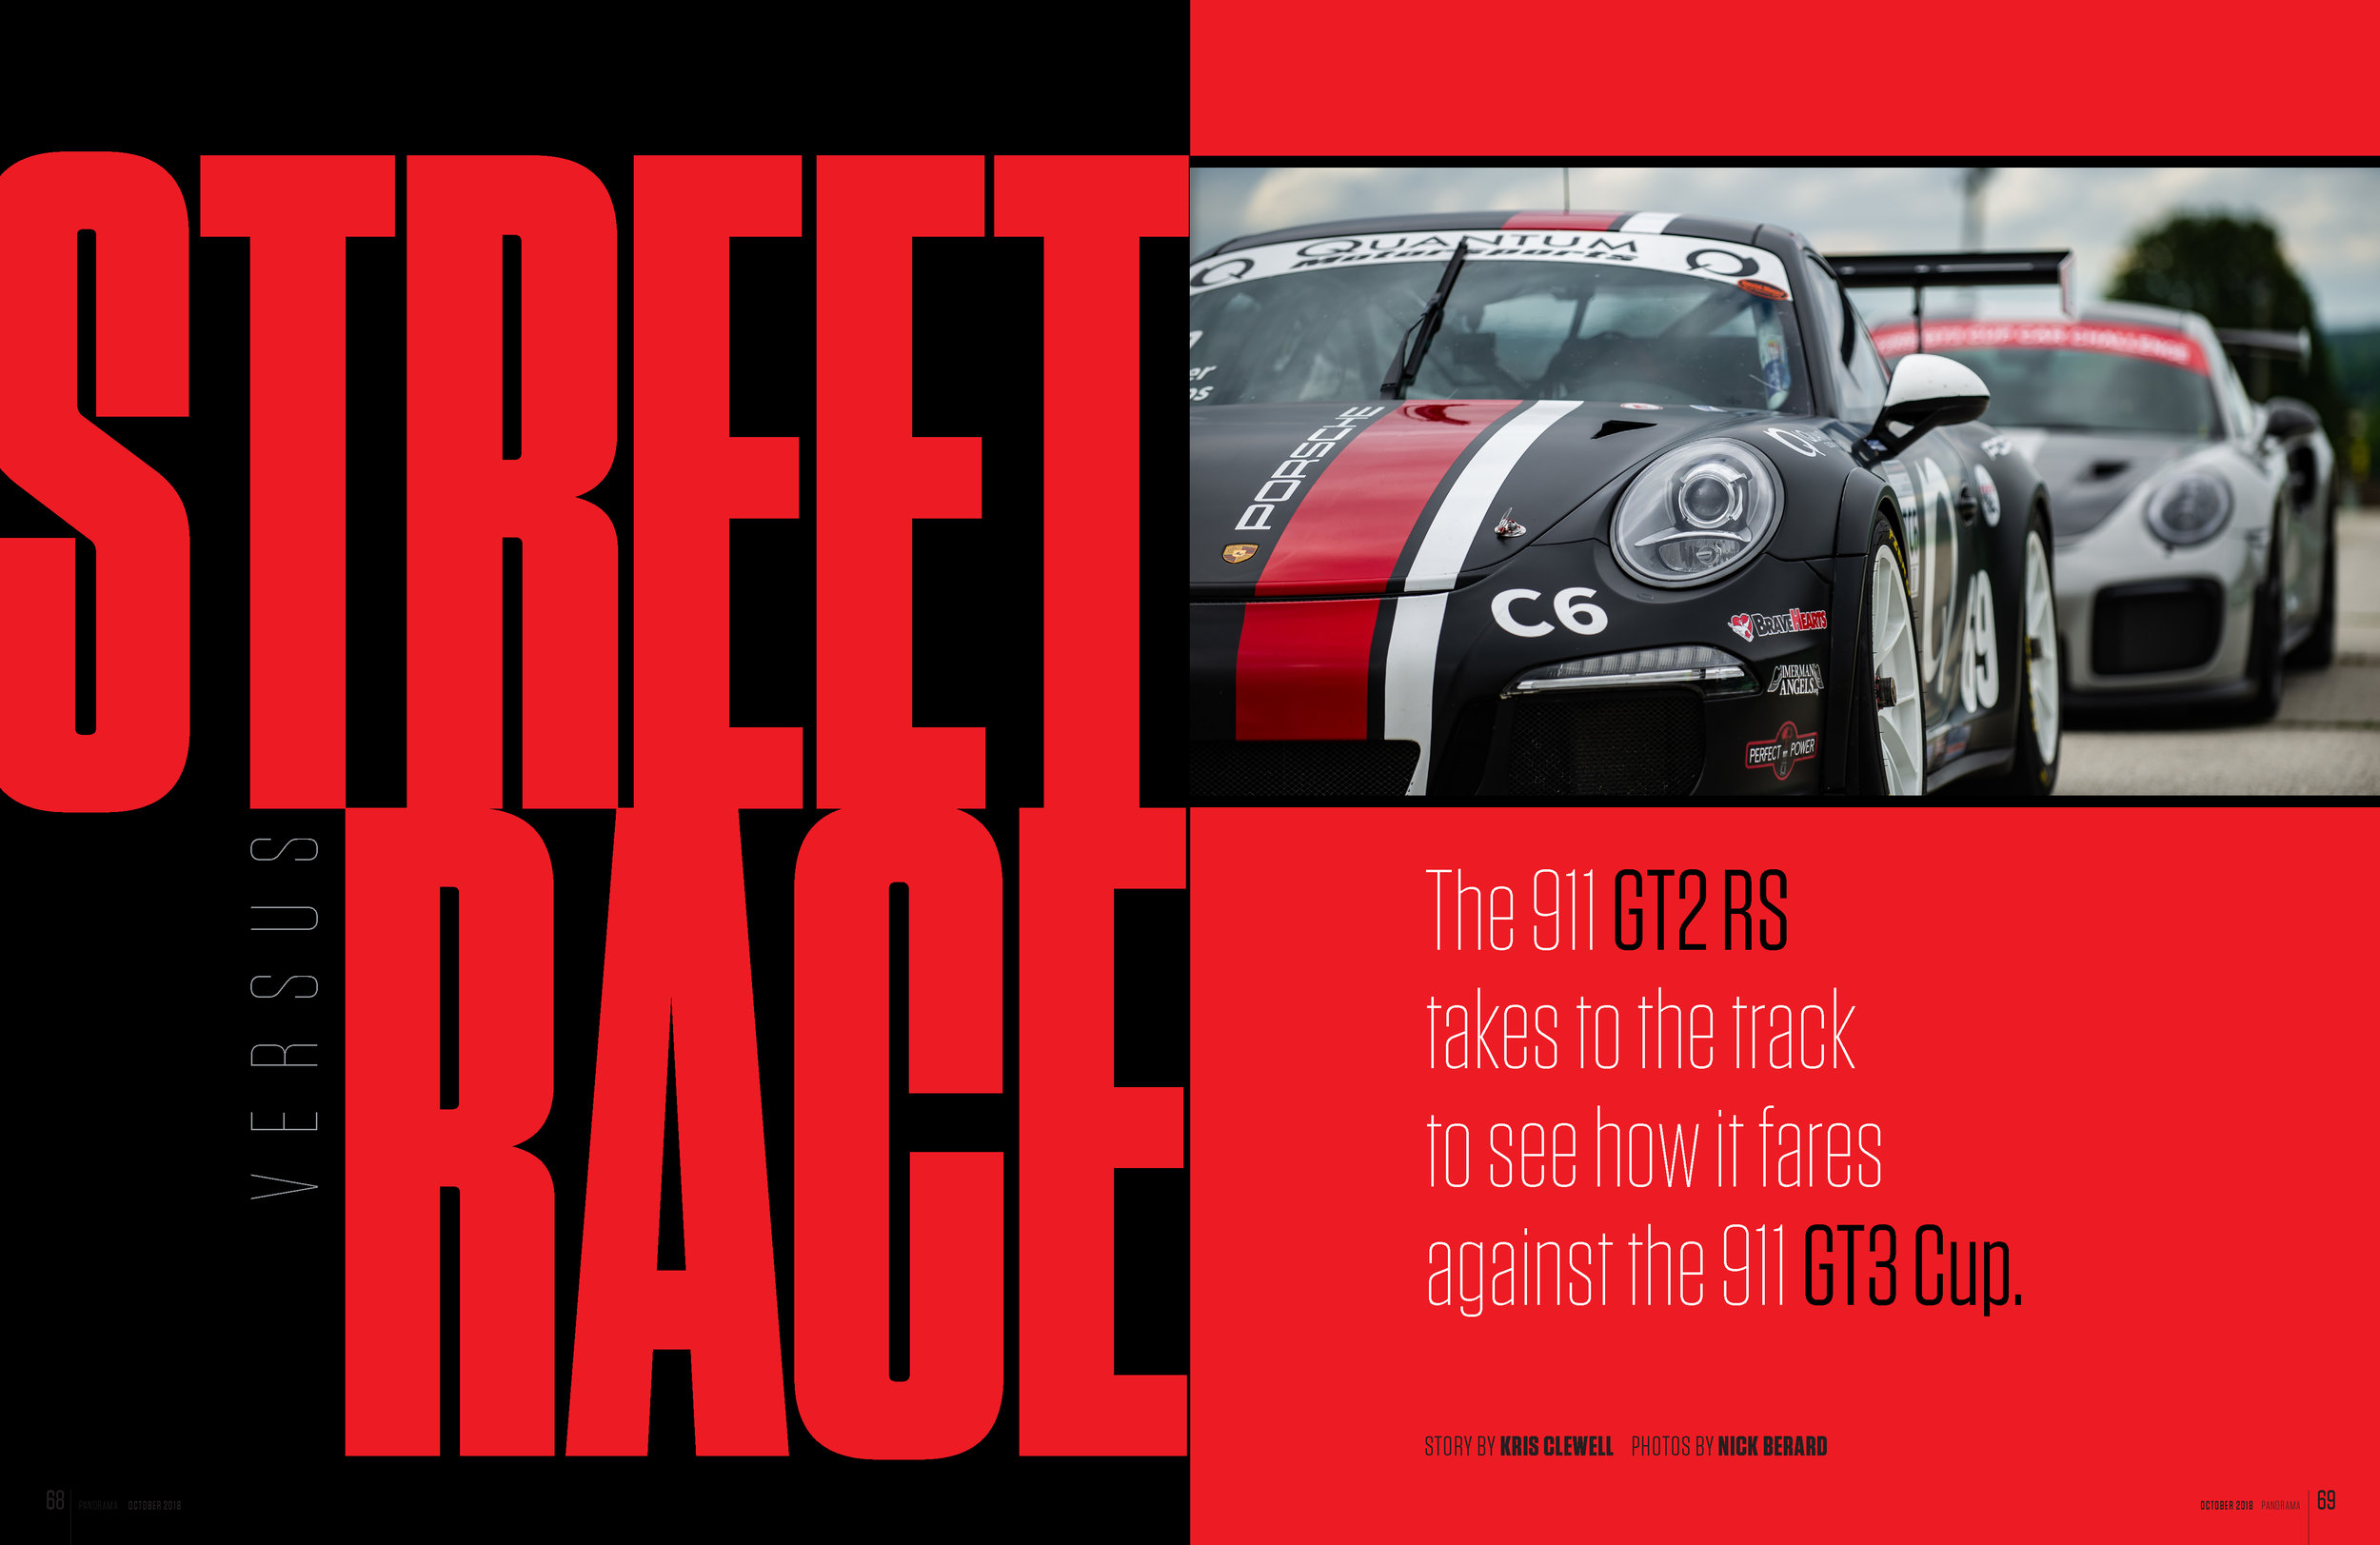 Porsche Panorama - Street vs Race - Full article and more images